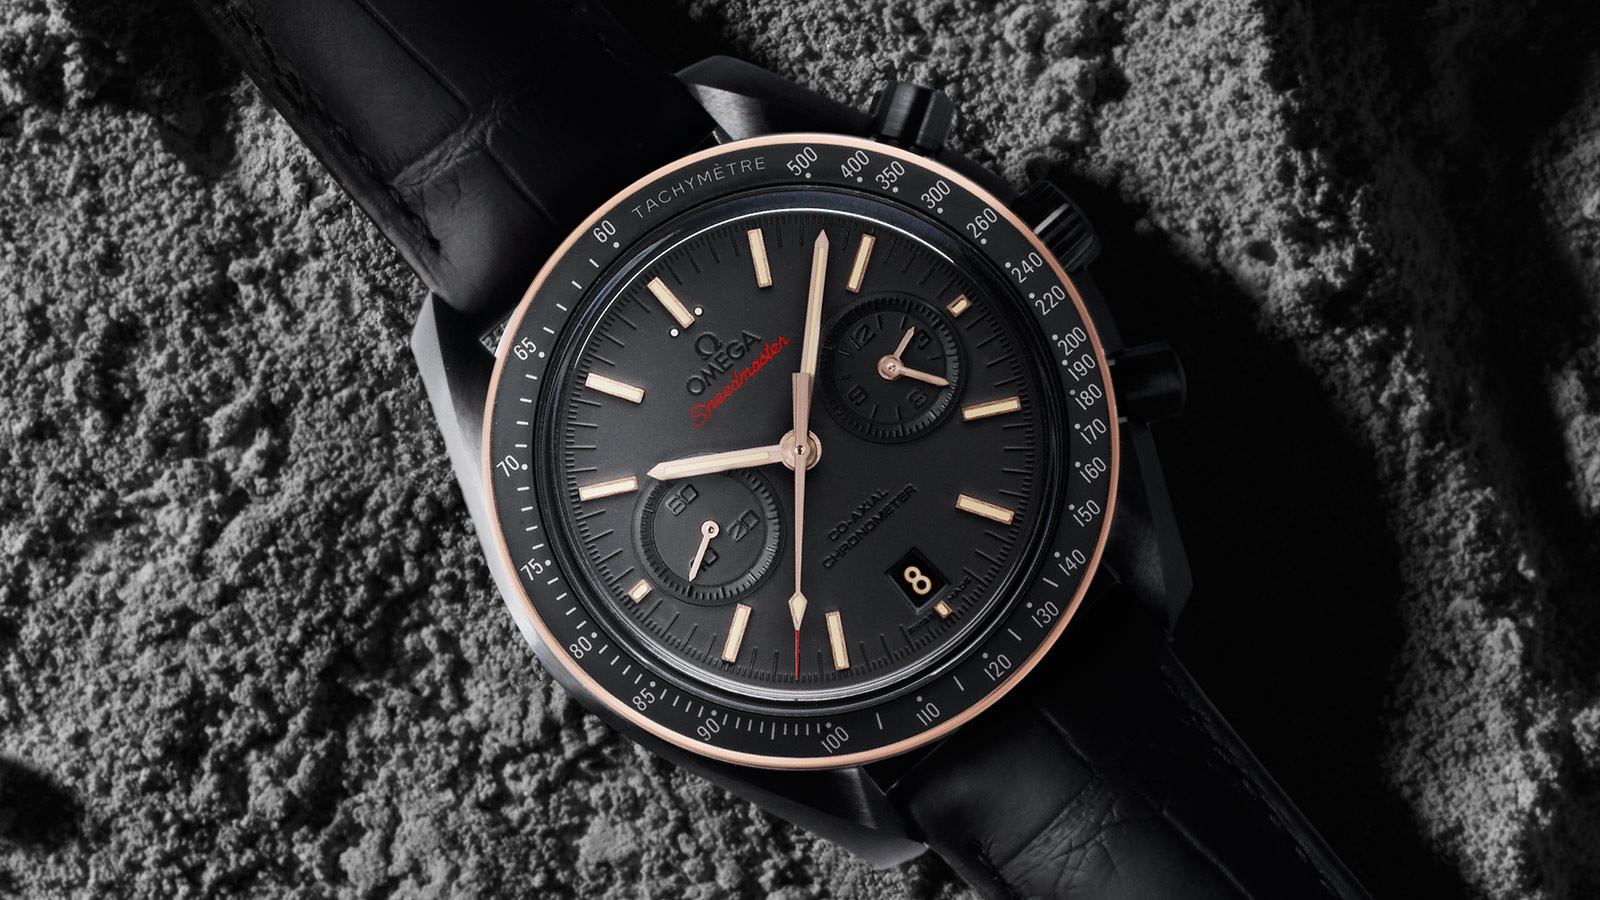 Speedmaster ムーンウォッチ Moonwatch Omega Co‑Axial Chronograph 44.25 mm - 311.63.44.51.06.001 - ビュー 1